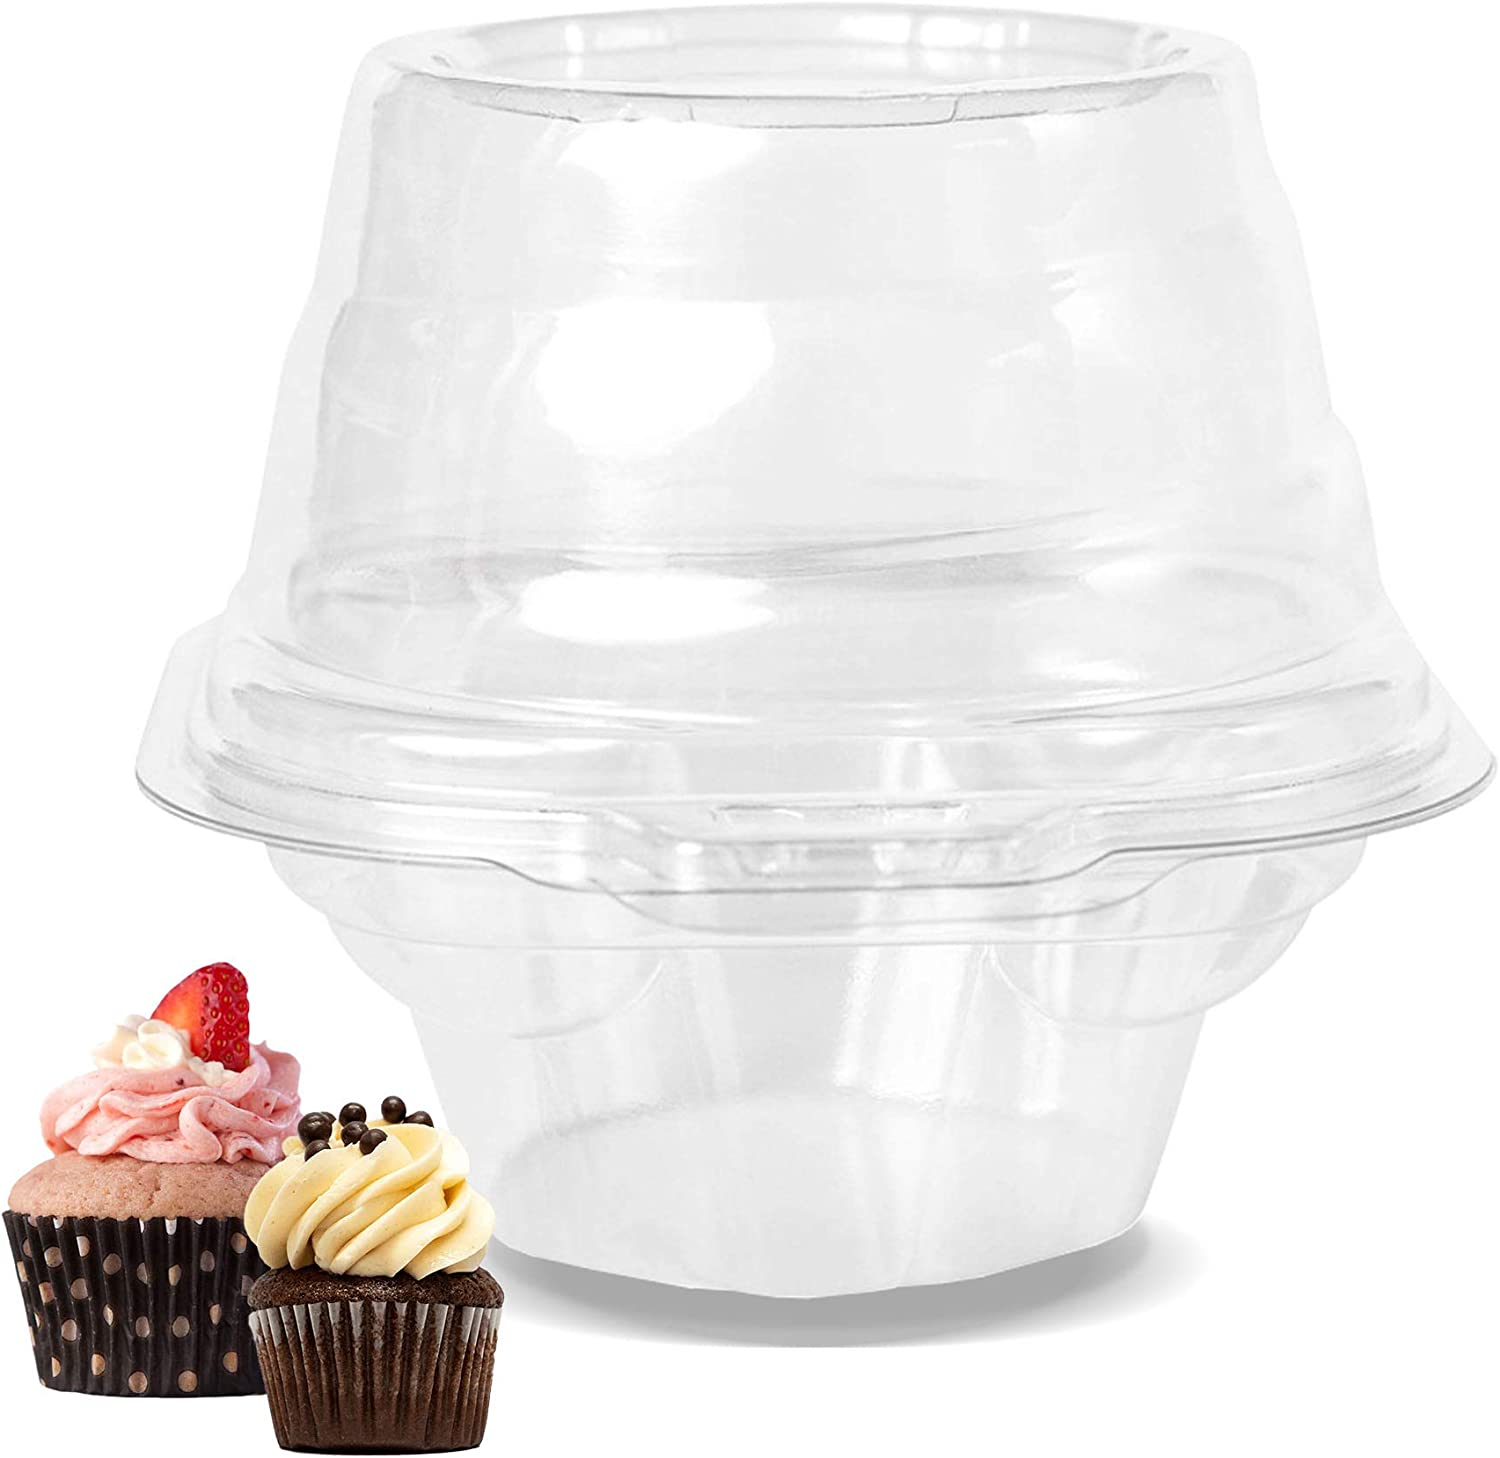 Bambee 100 pcs Individual Cupcake Containers | Single Snap and Stack Reusable Easter Cupcake Holders | Bulk Clear BPA Free Plastic Disposable Hot Cocoa Bomb High Dome Shell Boxes with Lids